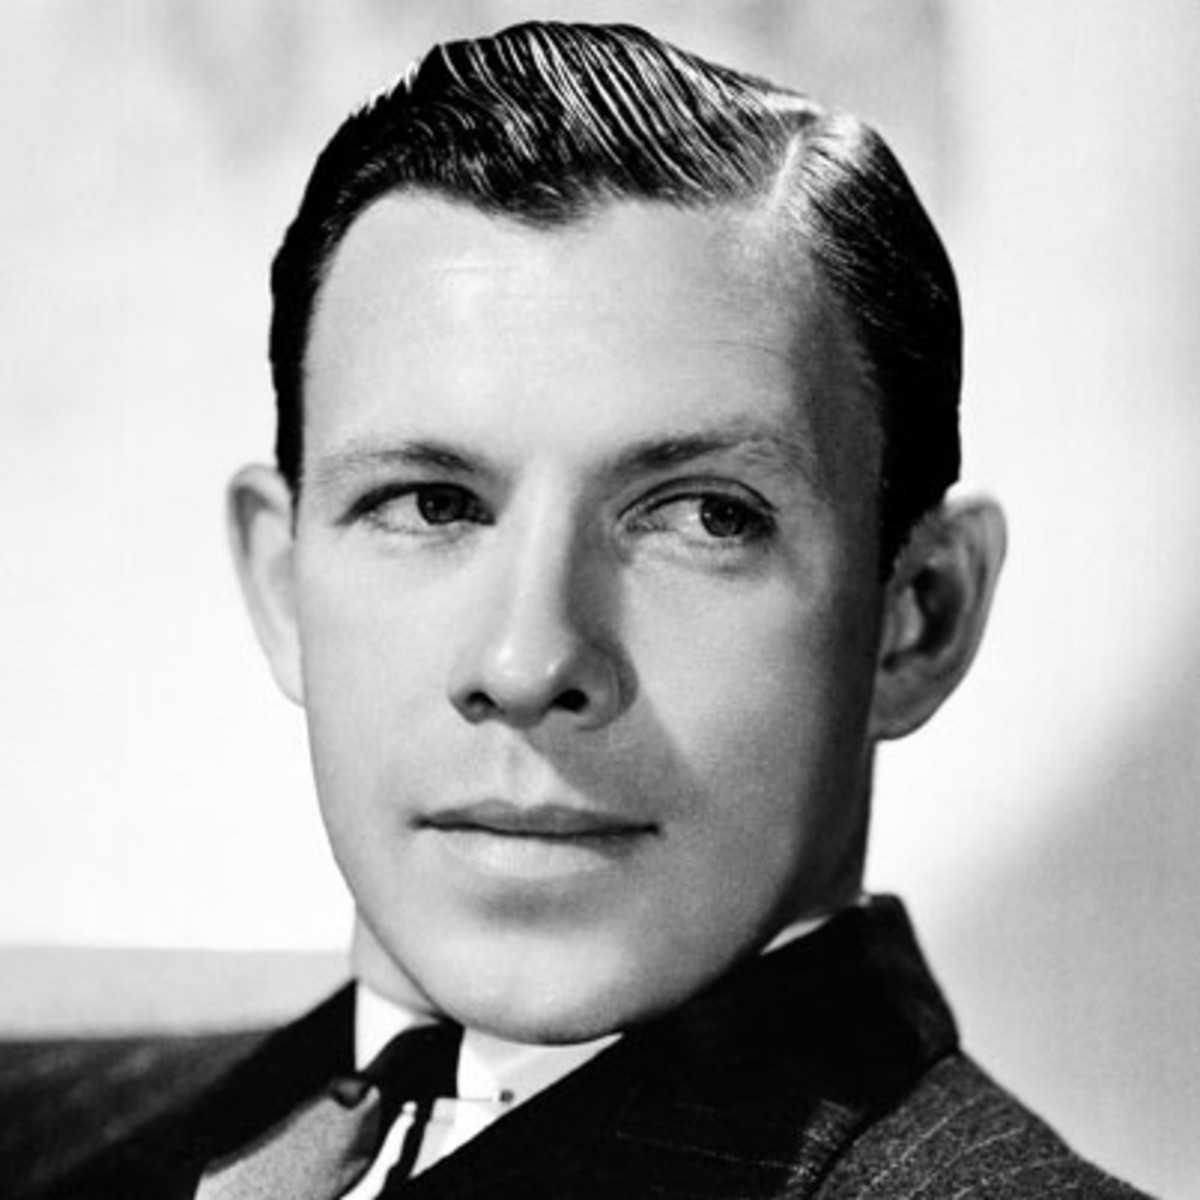 george murphy bugeorge murphy attorney, george murphy actor, george murphy bu, george murphy spotify, george murphy md, george murphy lawyer, george murphy mgm, george murphy barclays, george murphy ge, george murphy chautauqua, george murphy attorney houston, george murphy boxford ma, george murphy dancer, george murphy linkedin, george murphy tom lehrer, george murphy penguins, george murphy community pool, george murphy lab, george murphy wayne homes, george murphy california